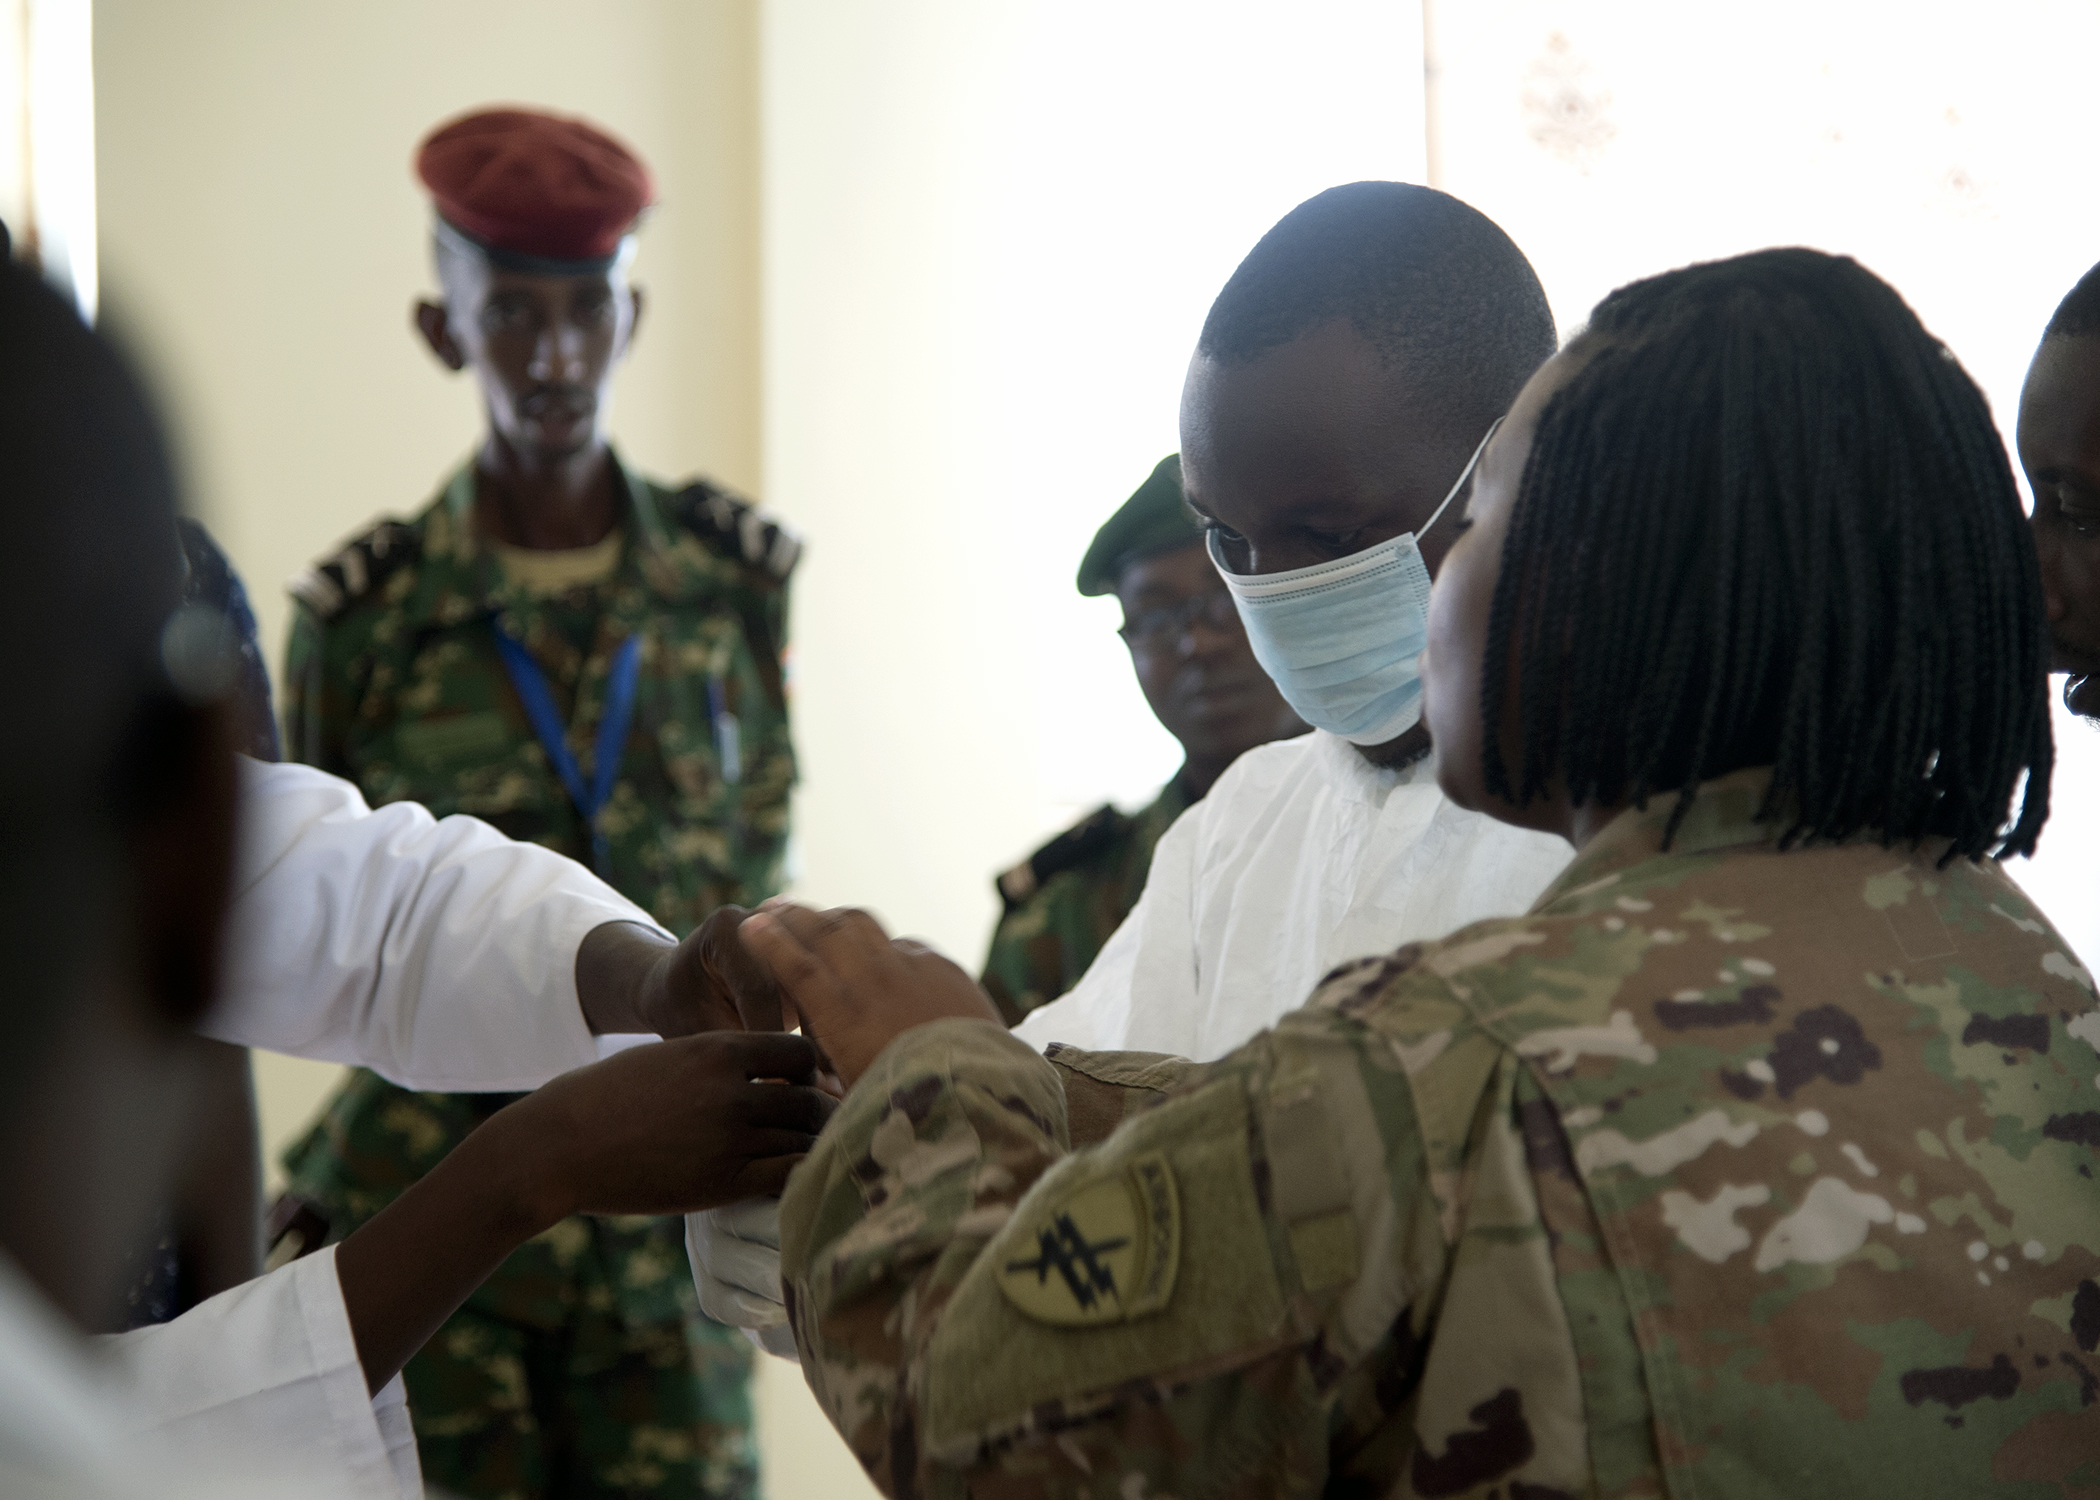 U.S. Army Maj. Lakesha Williams, right, public health nurse for the 403rd Civil Affairs Battalion, assigned to Combined Joint Task Force-Horn of Africa (CJTF-HOA), assists hospital personnel with the donning of a hazardous material suit during a presentation at the Kamenge Military Hospital, Bujumbura, Burundi, June 18, 2019. The 403rd Civil Affairs Battalion, CJTF-HOA, and military personnel and doctors from the Kamenge Military Hospital conducted an Ebola preparedness subject matter expert exchange as a precautionary measure for personnel near the border of the Democratic Republic of Congo. (U.S. Navy photo by Mass Communication Specialist 1st Class Nick Scott)